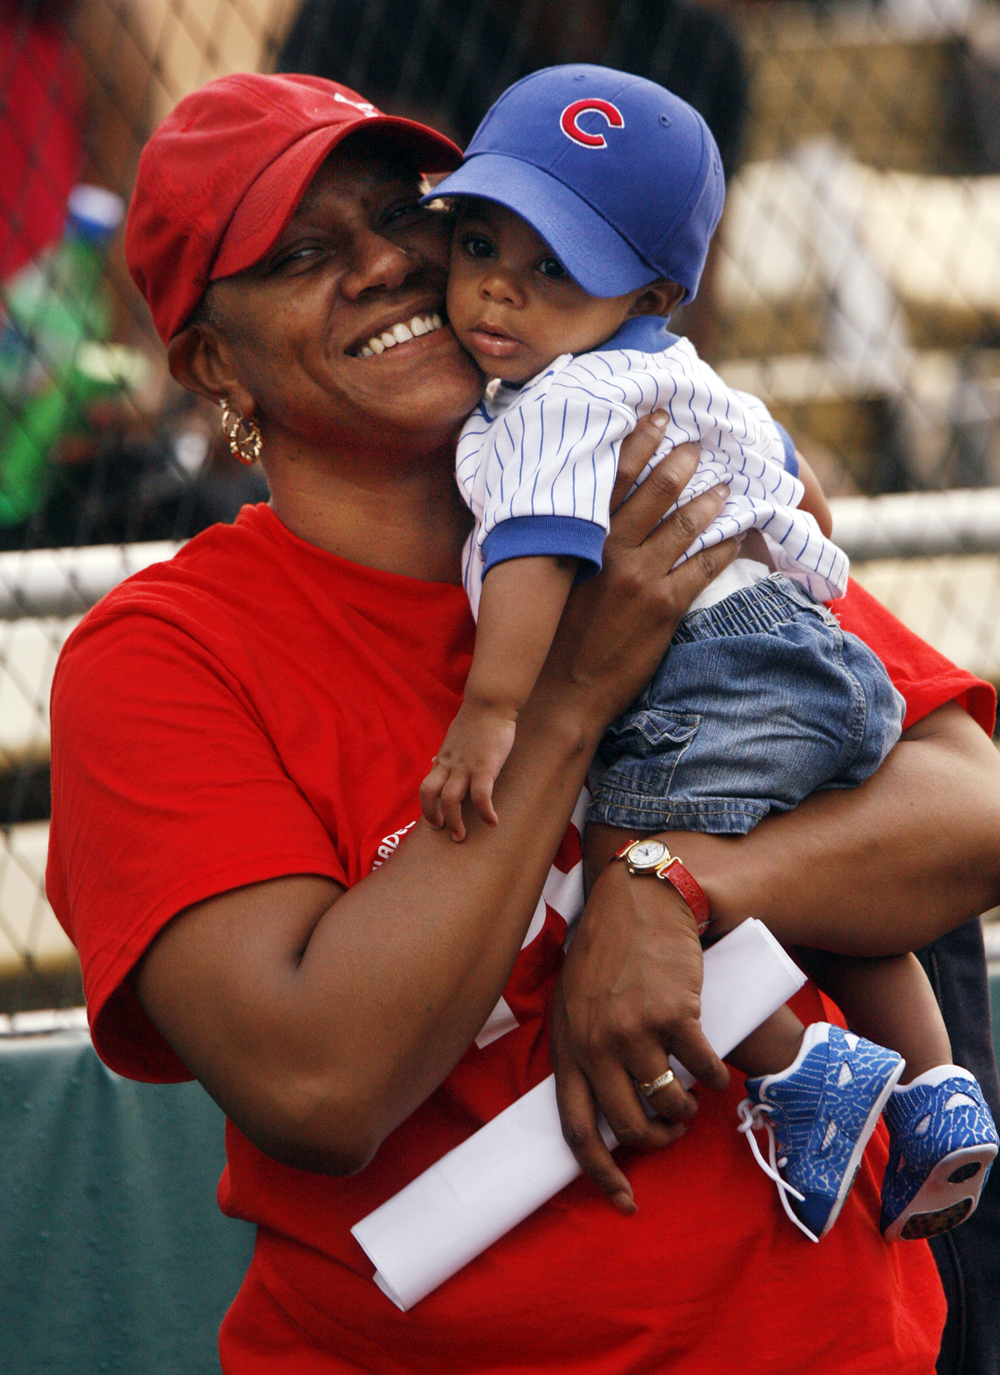 Linda Shanklin holds her grandson Andre Iguodala II during the  Andre Iguodala Celebrity All-Star Softball Game Sat. August 4, 2007 at Lanphier Park. Ted Schurter/The State Journal-Register